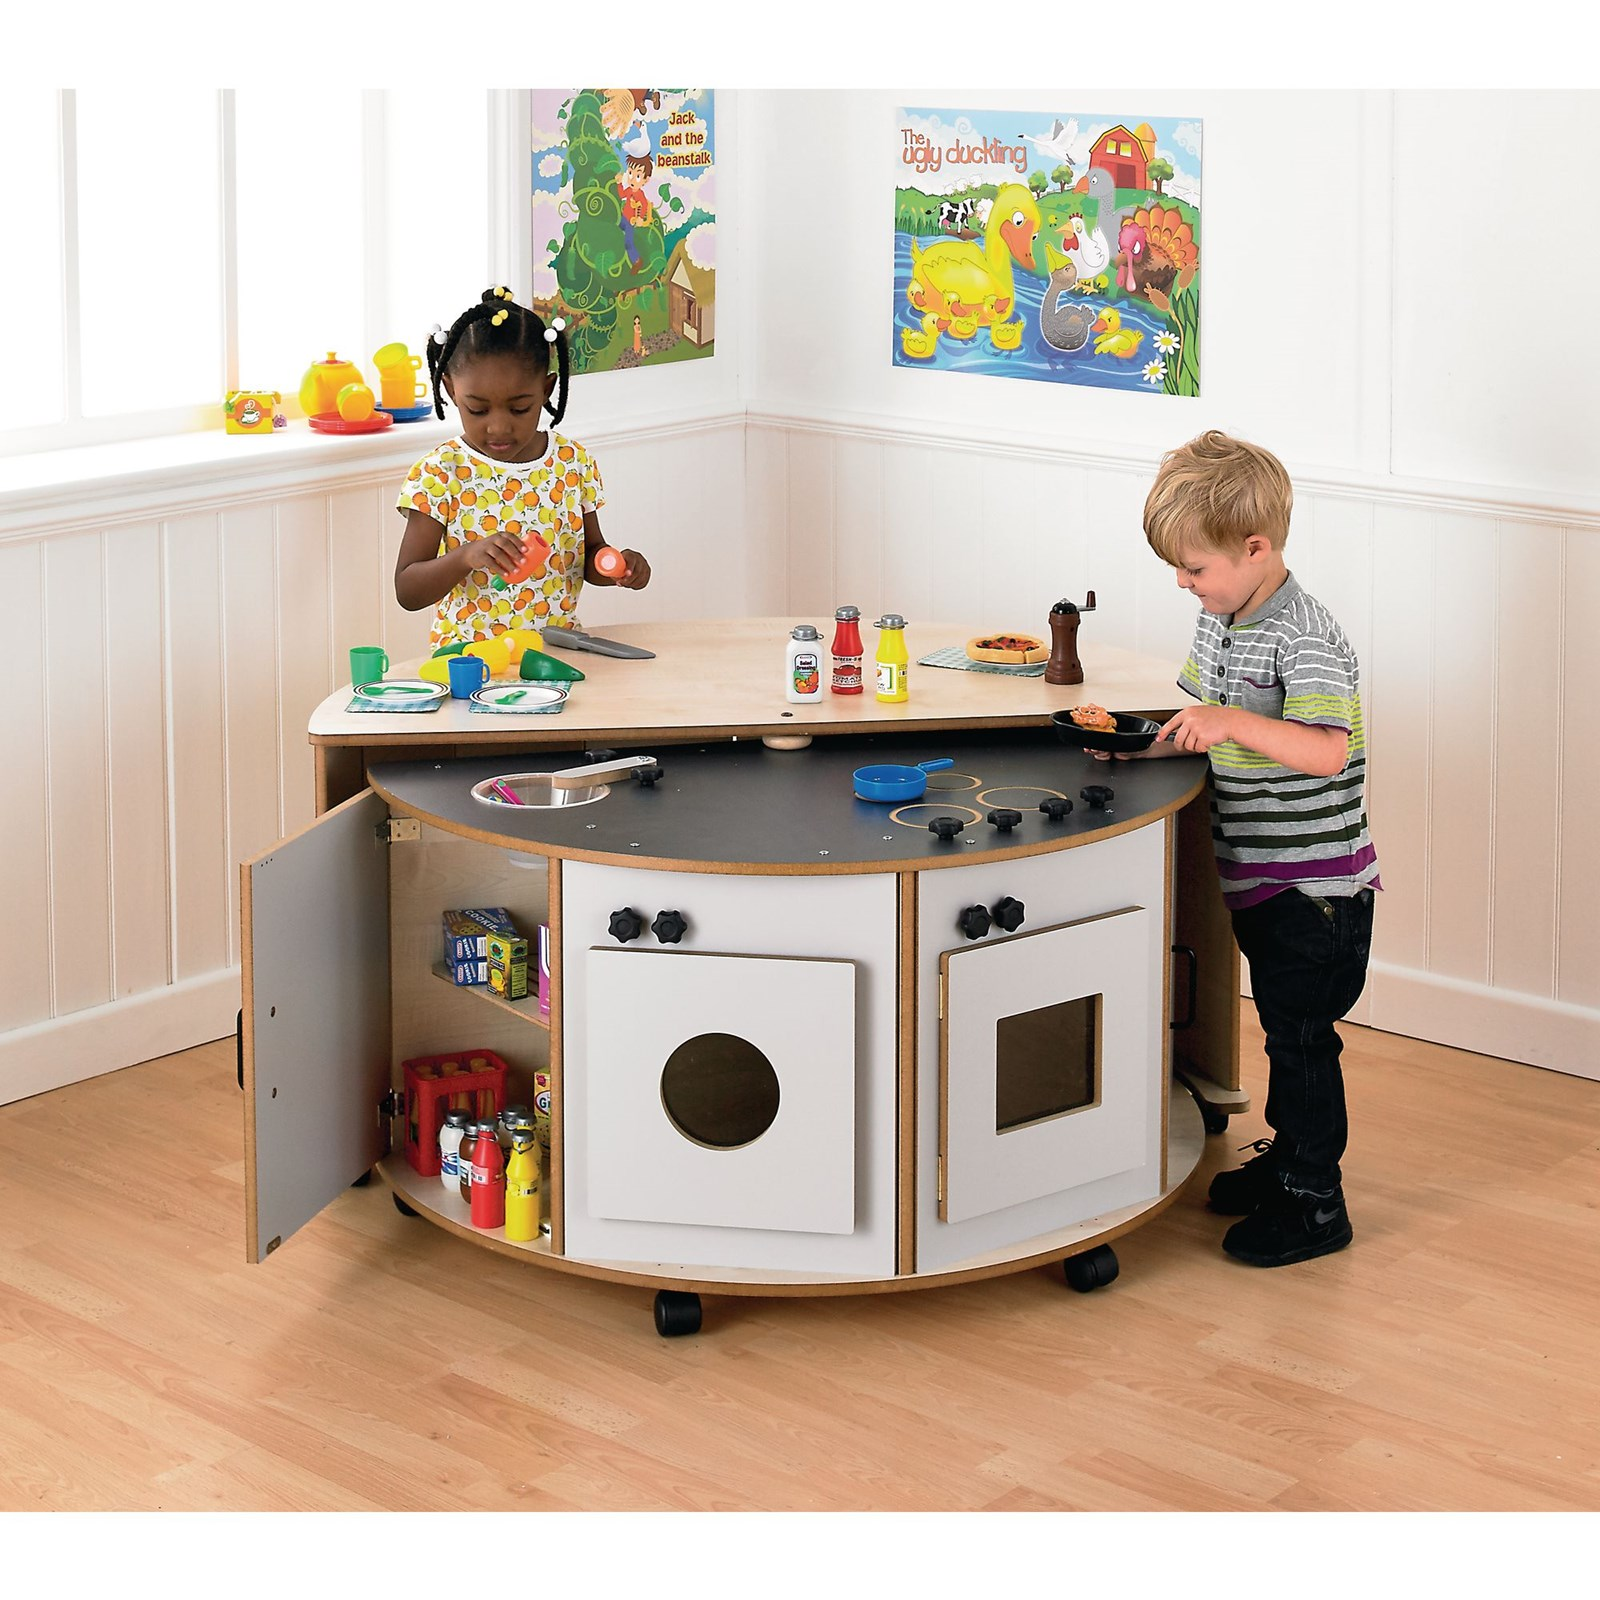 Pack Away Space Saver Kitchen Gls Educational Supplies